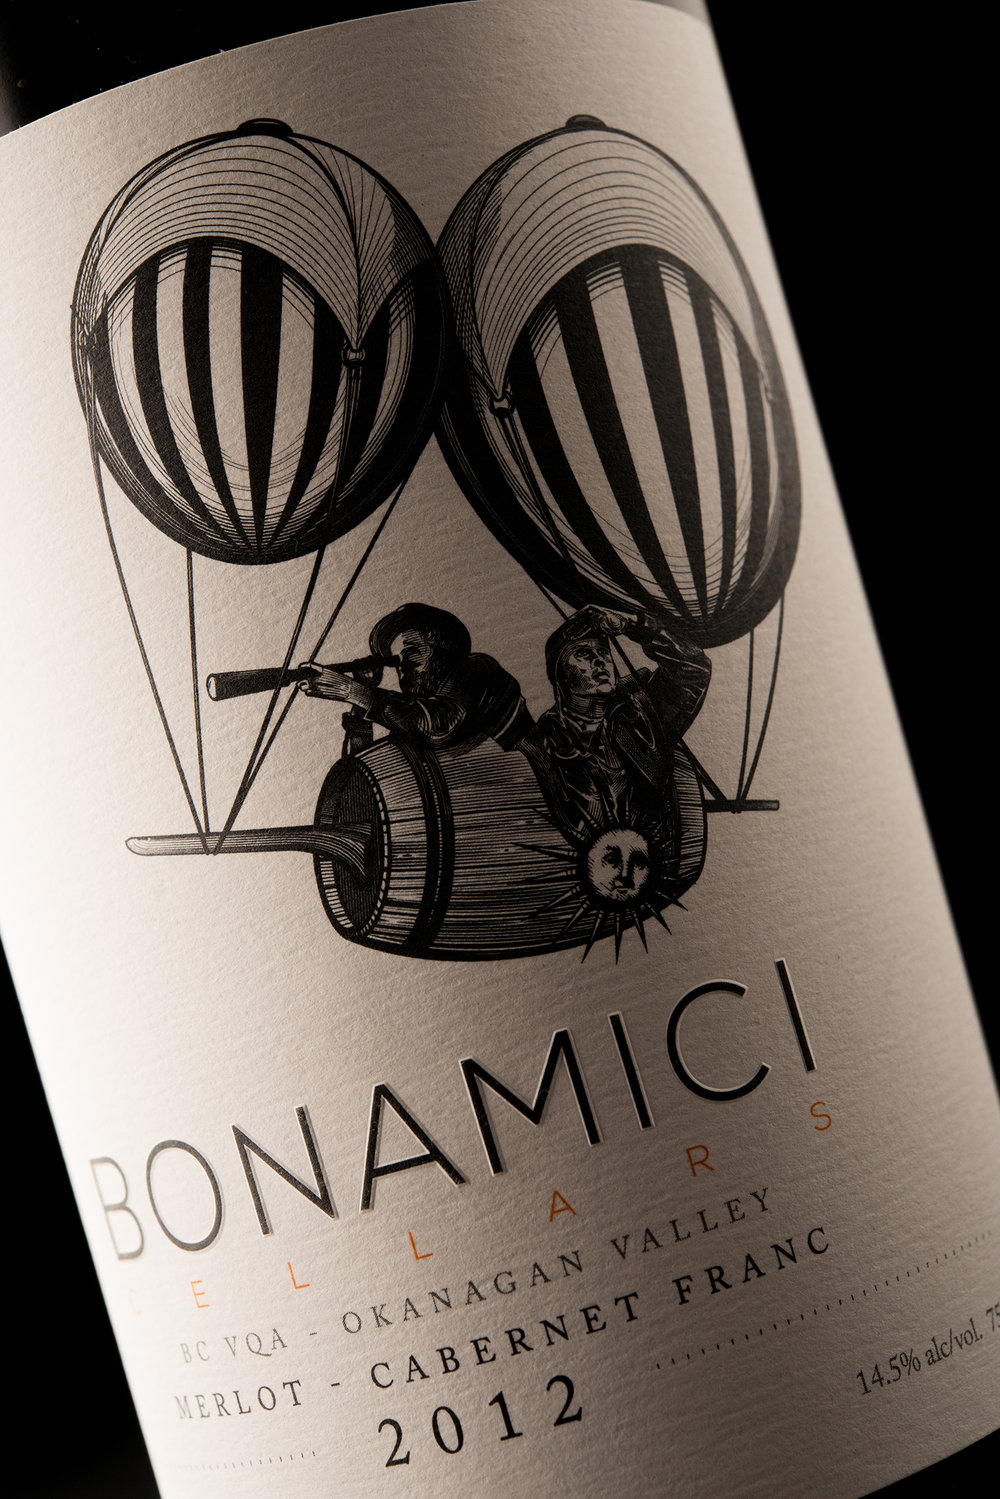 Packaging and Branding Design for Bonamici Cellars